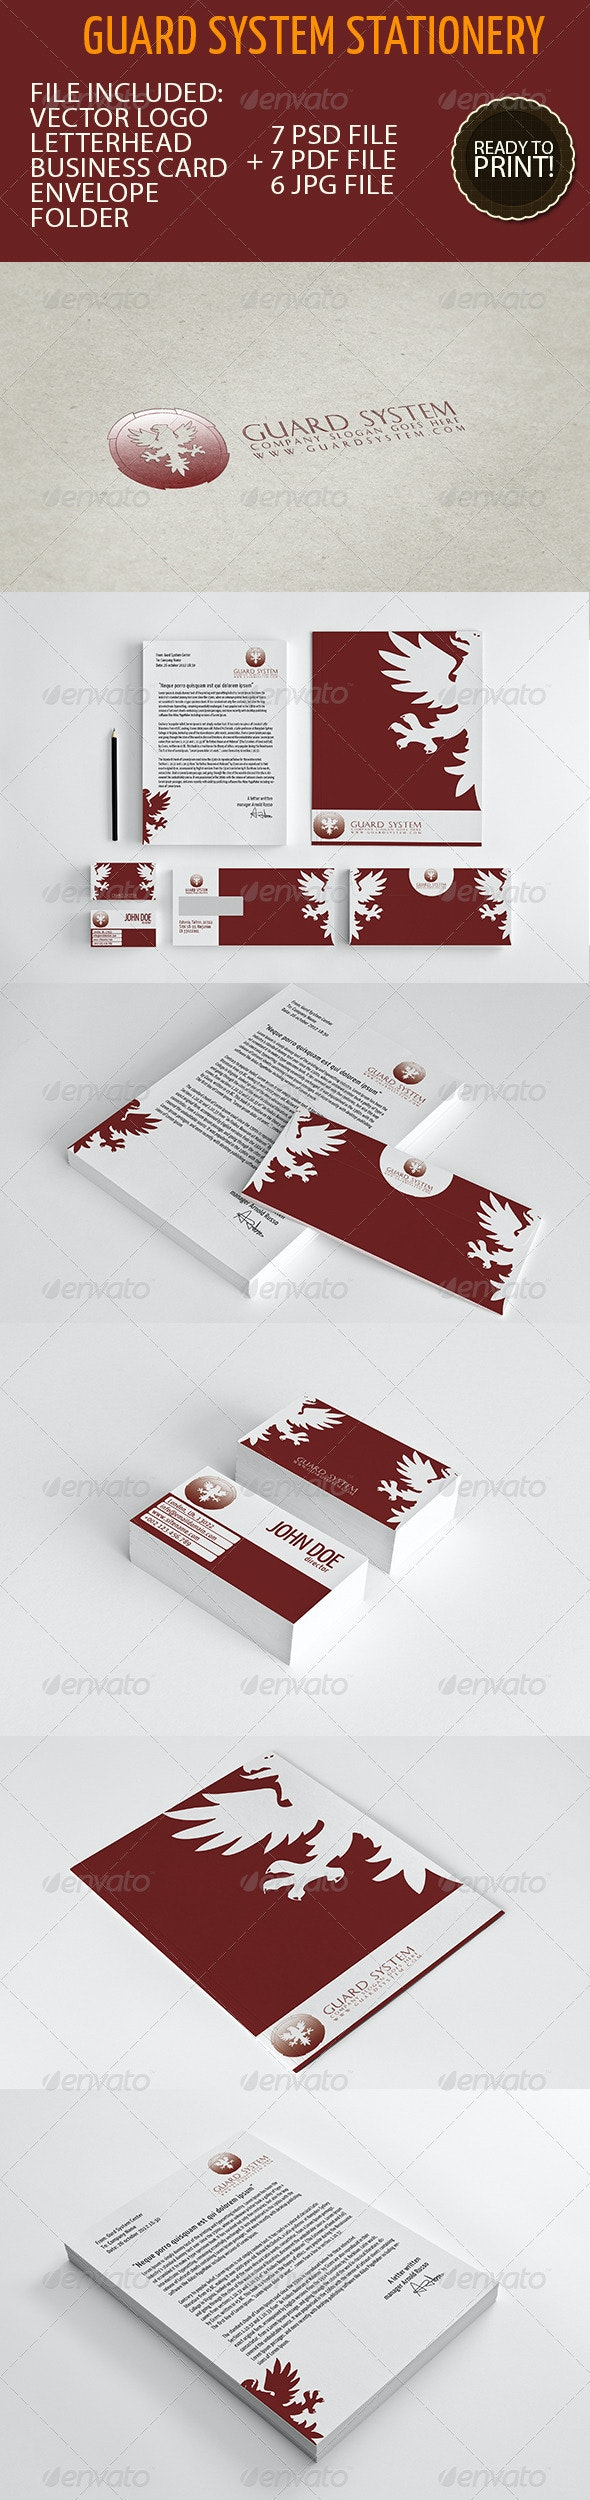 Business Stationery 01 - Guard System - Stationery Print Templates